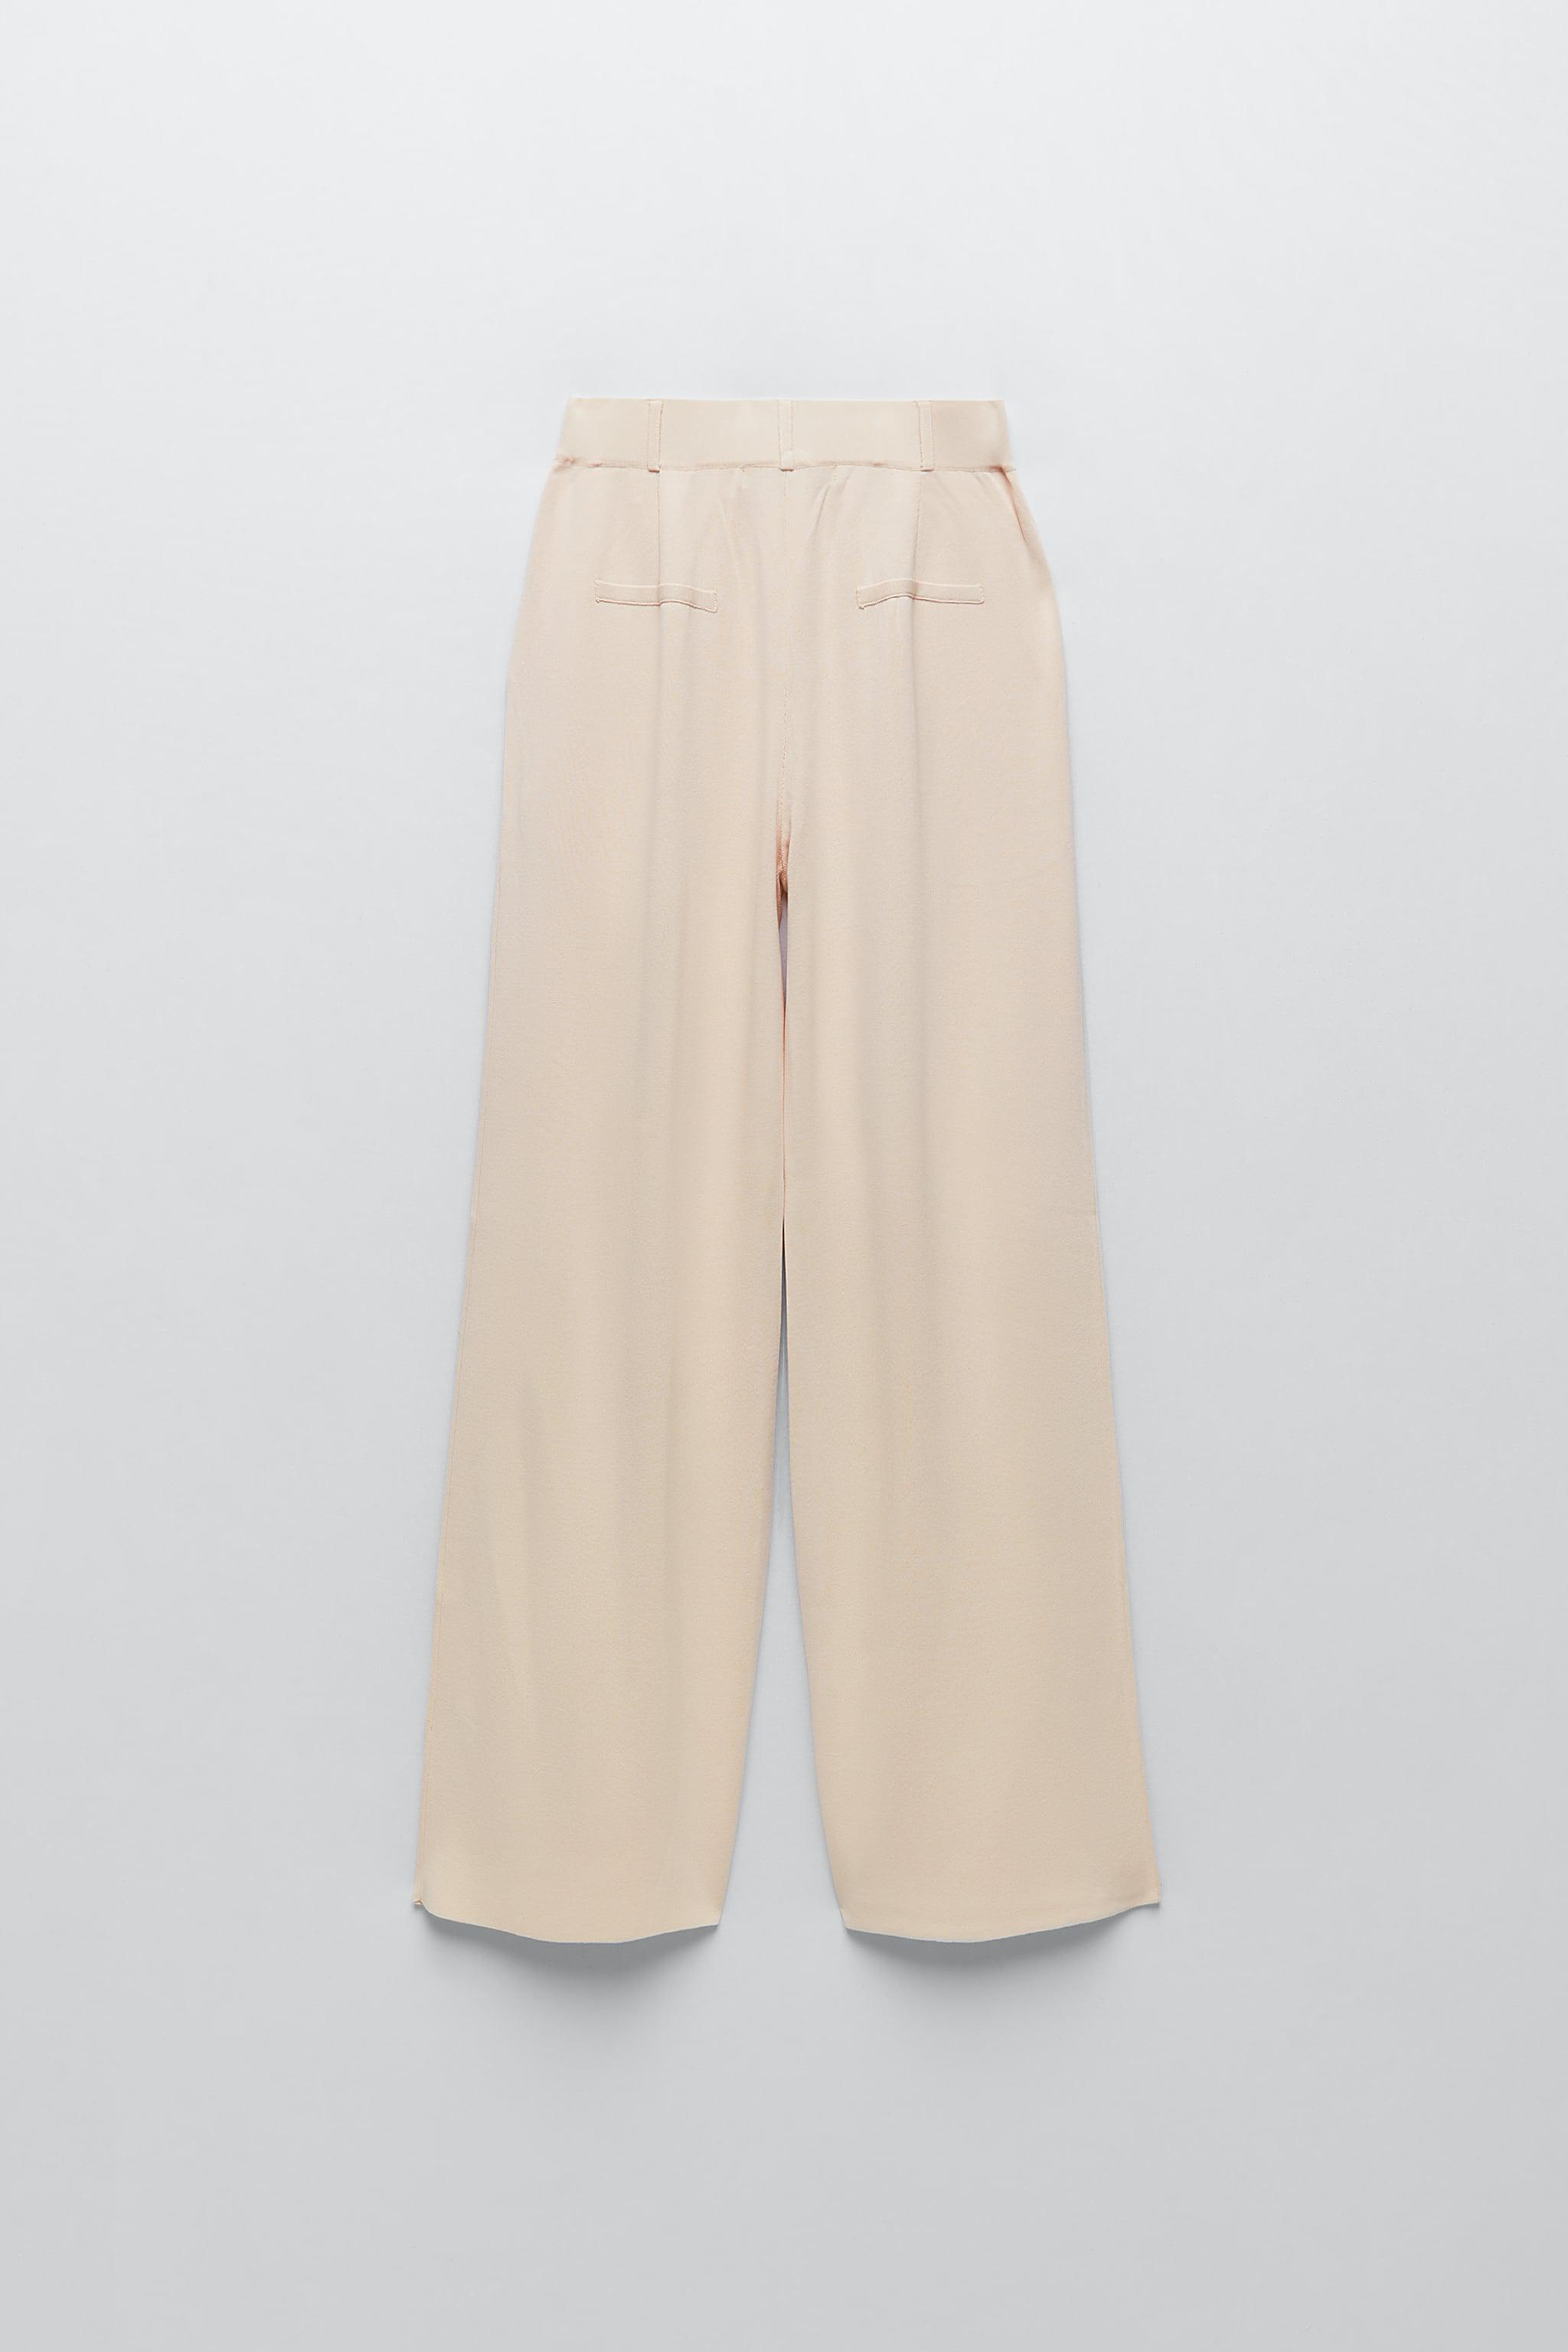 KNIT PANTS LIMITED EDITION 4